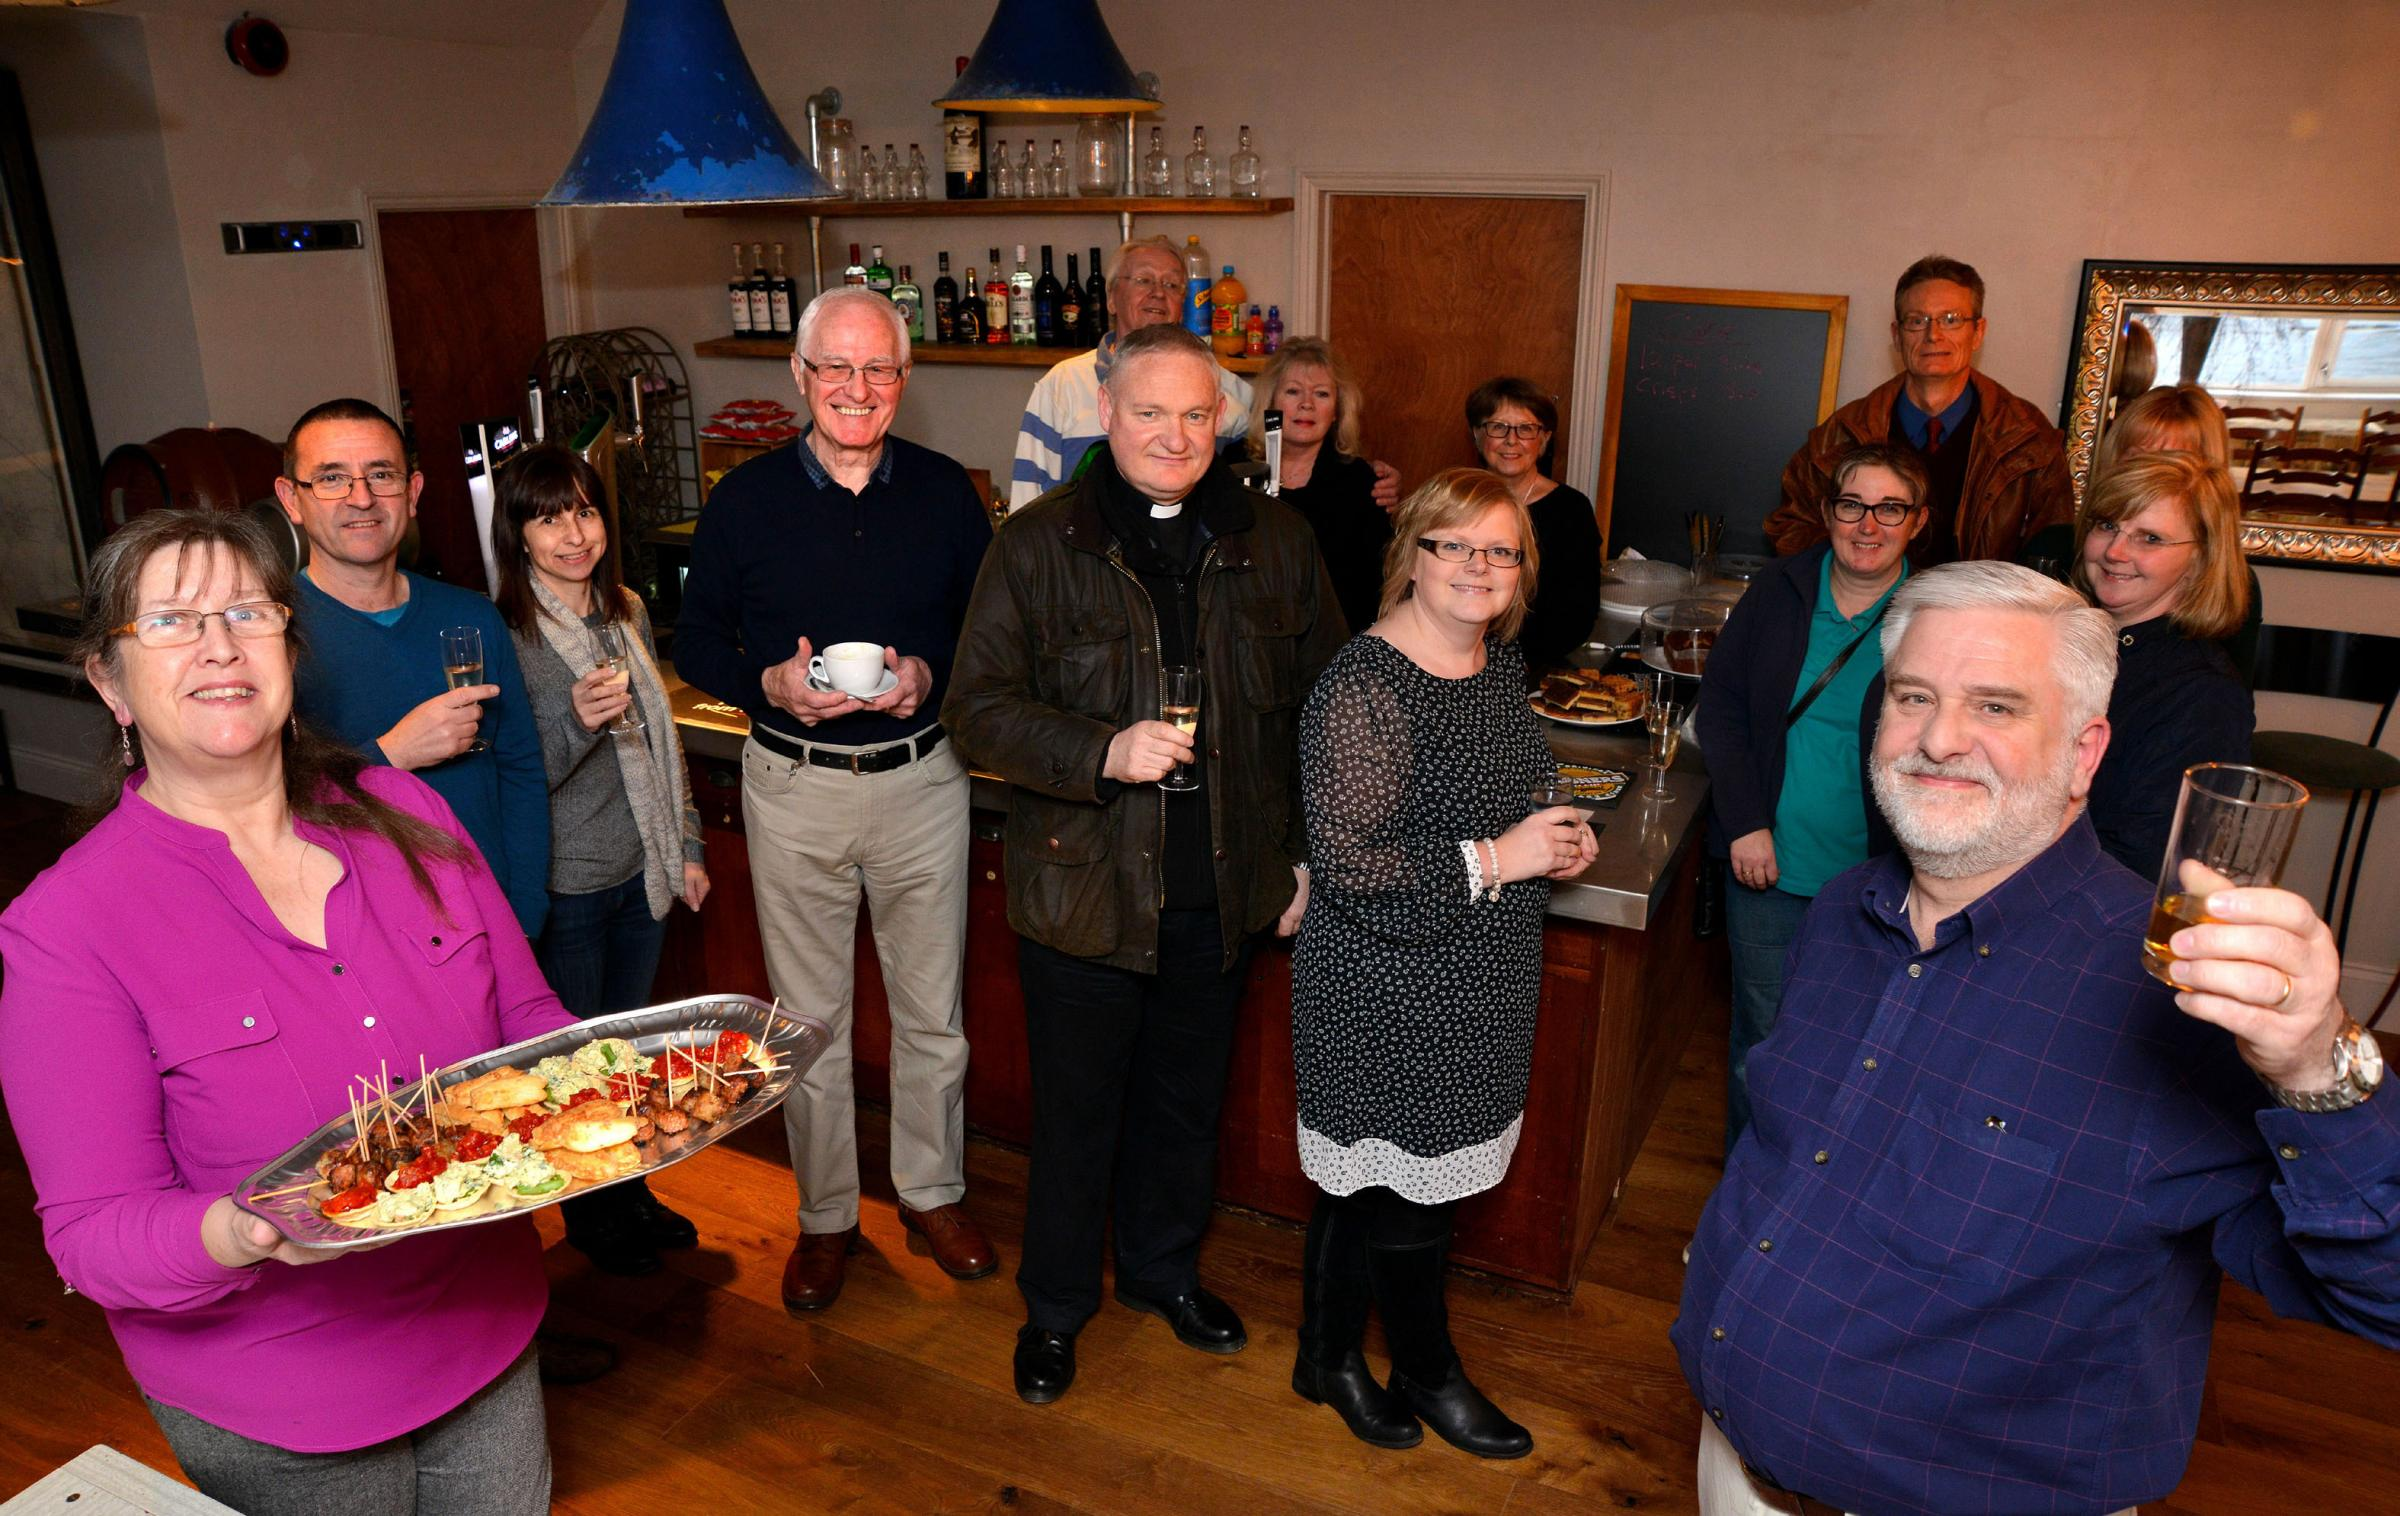 The opening of the new coffee and lounge bar at Norton Juxta Kempsey Parish Hall. Chairman of parish hall trustees, Kevin Fincher with guests toast the opening of the new facility. Photo by John Anyon